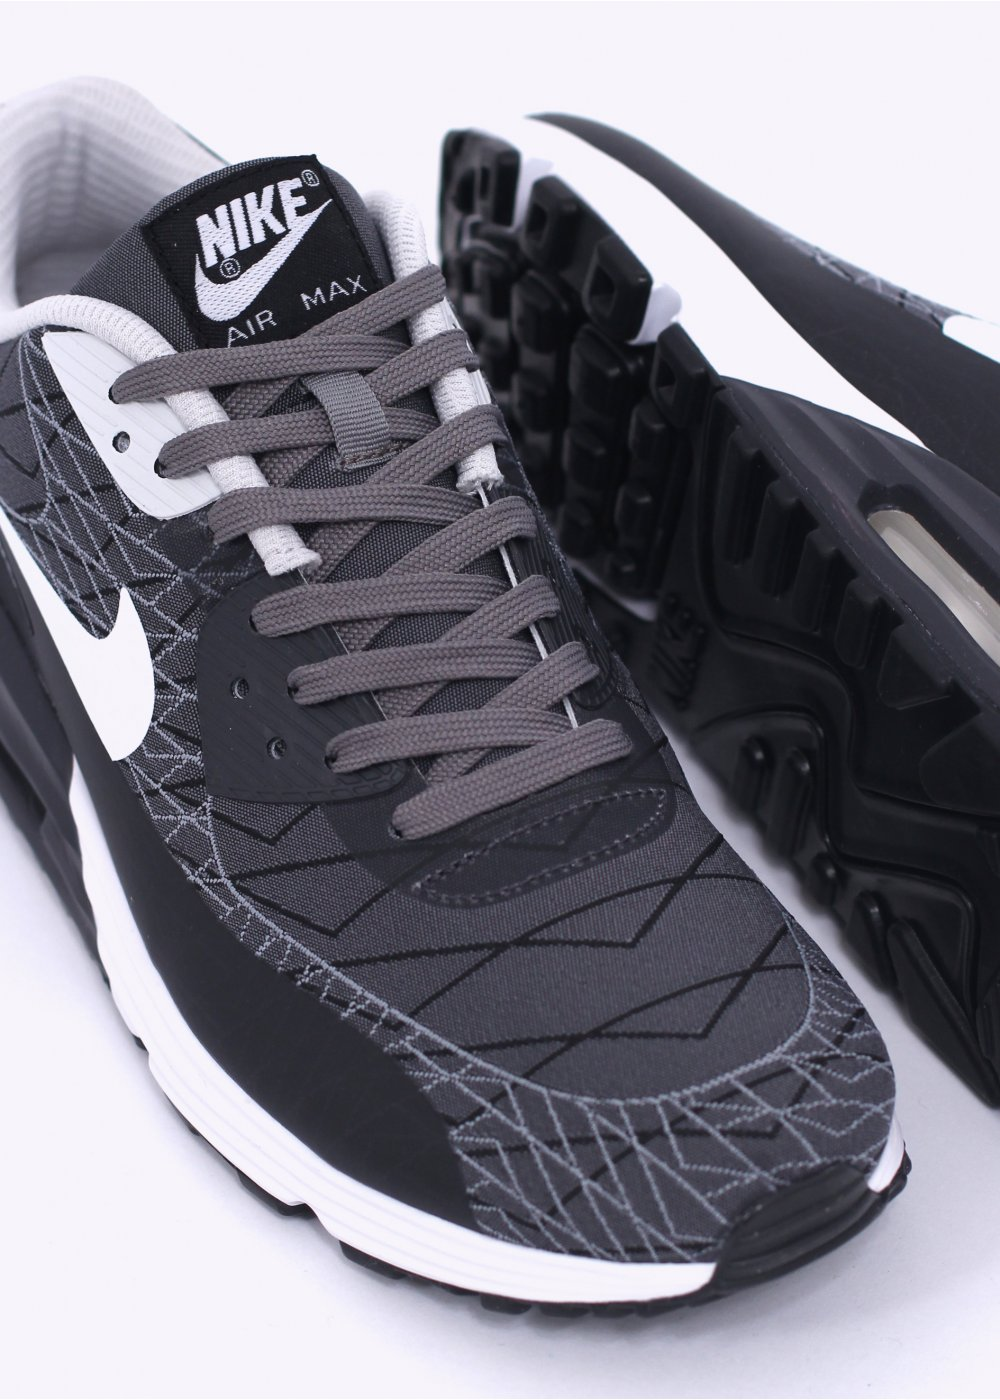 nike air max lunar 90 jcrd trainers grey white. Black Bedroom Furniture Sets. Home Design Ideas